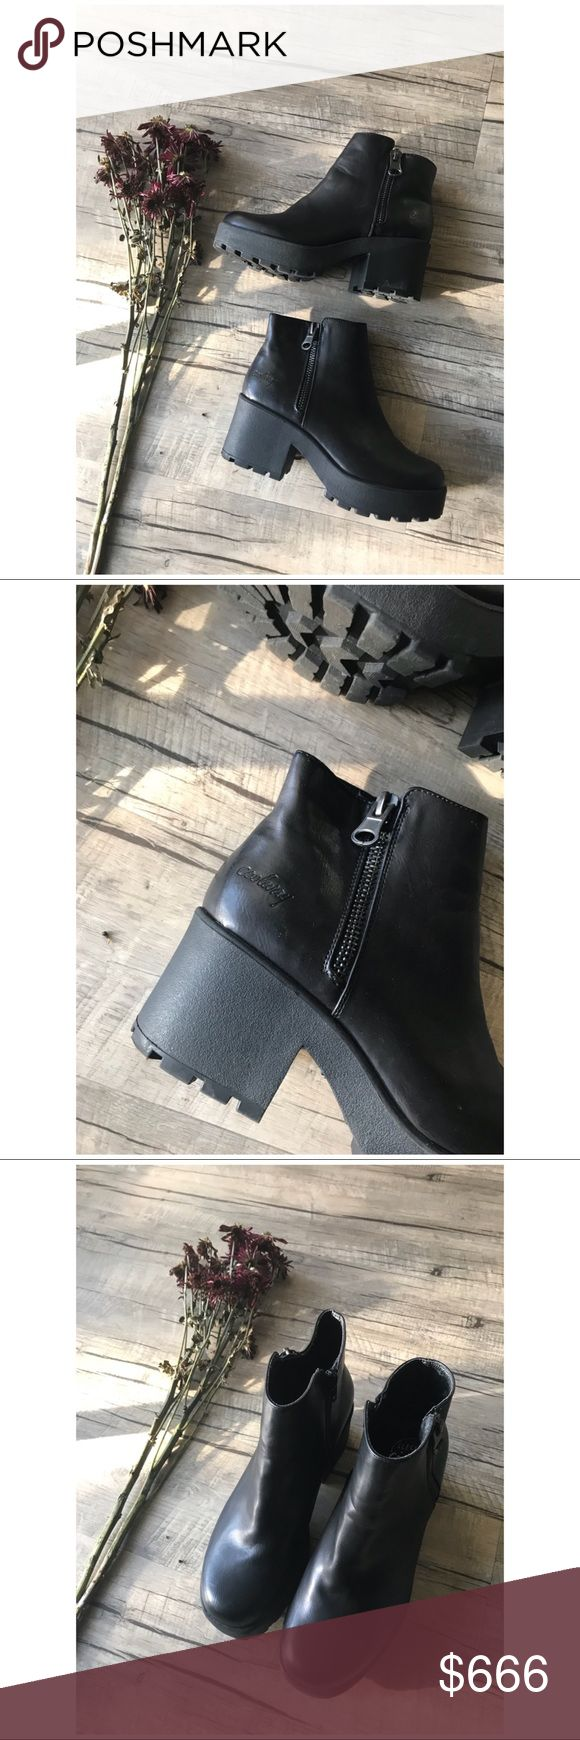 🐰Minimal Vegan Leather Platform Boots// + GREAT condition - (VERY light scuffs)  + Faux leather but very high quality, I've worn this a decent amount of times and they still look fresh as heck  + Run a little wide but are comfy with socks if you have narrower feet   ** This item is priced for quick sale - because of this I will not be modeling or accepting offers. I am real nice about bundle deals **   IF you see the bunny it is buy one get one FREE! Just add your likes to your bundle and I…